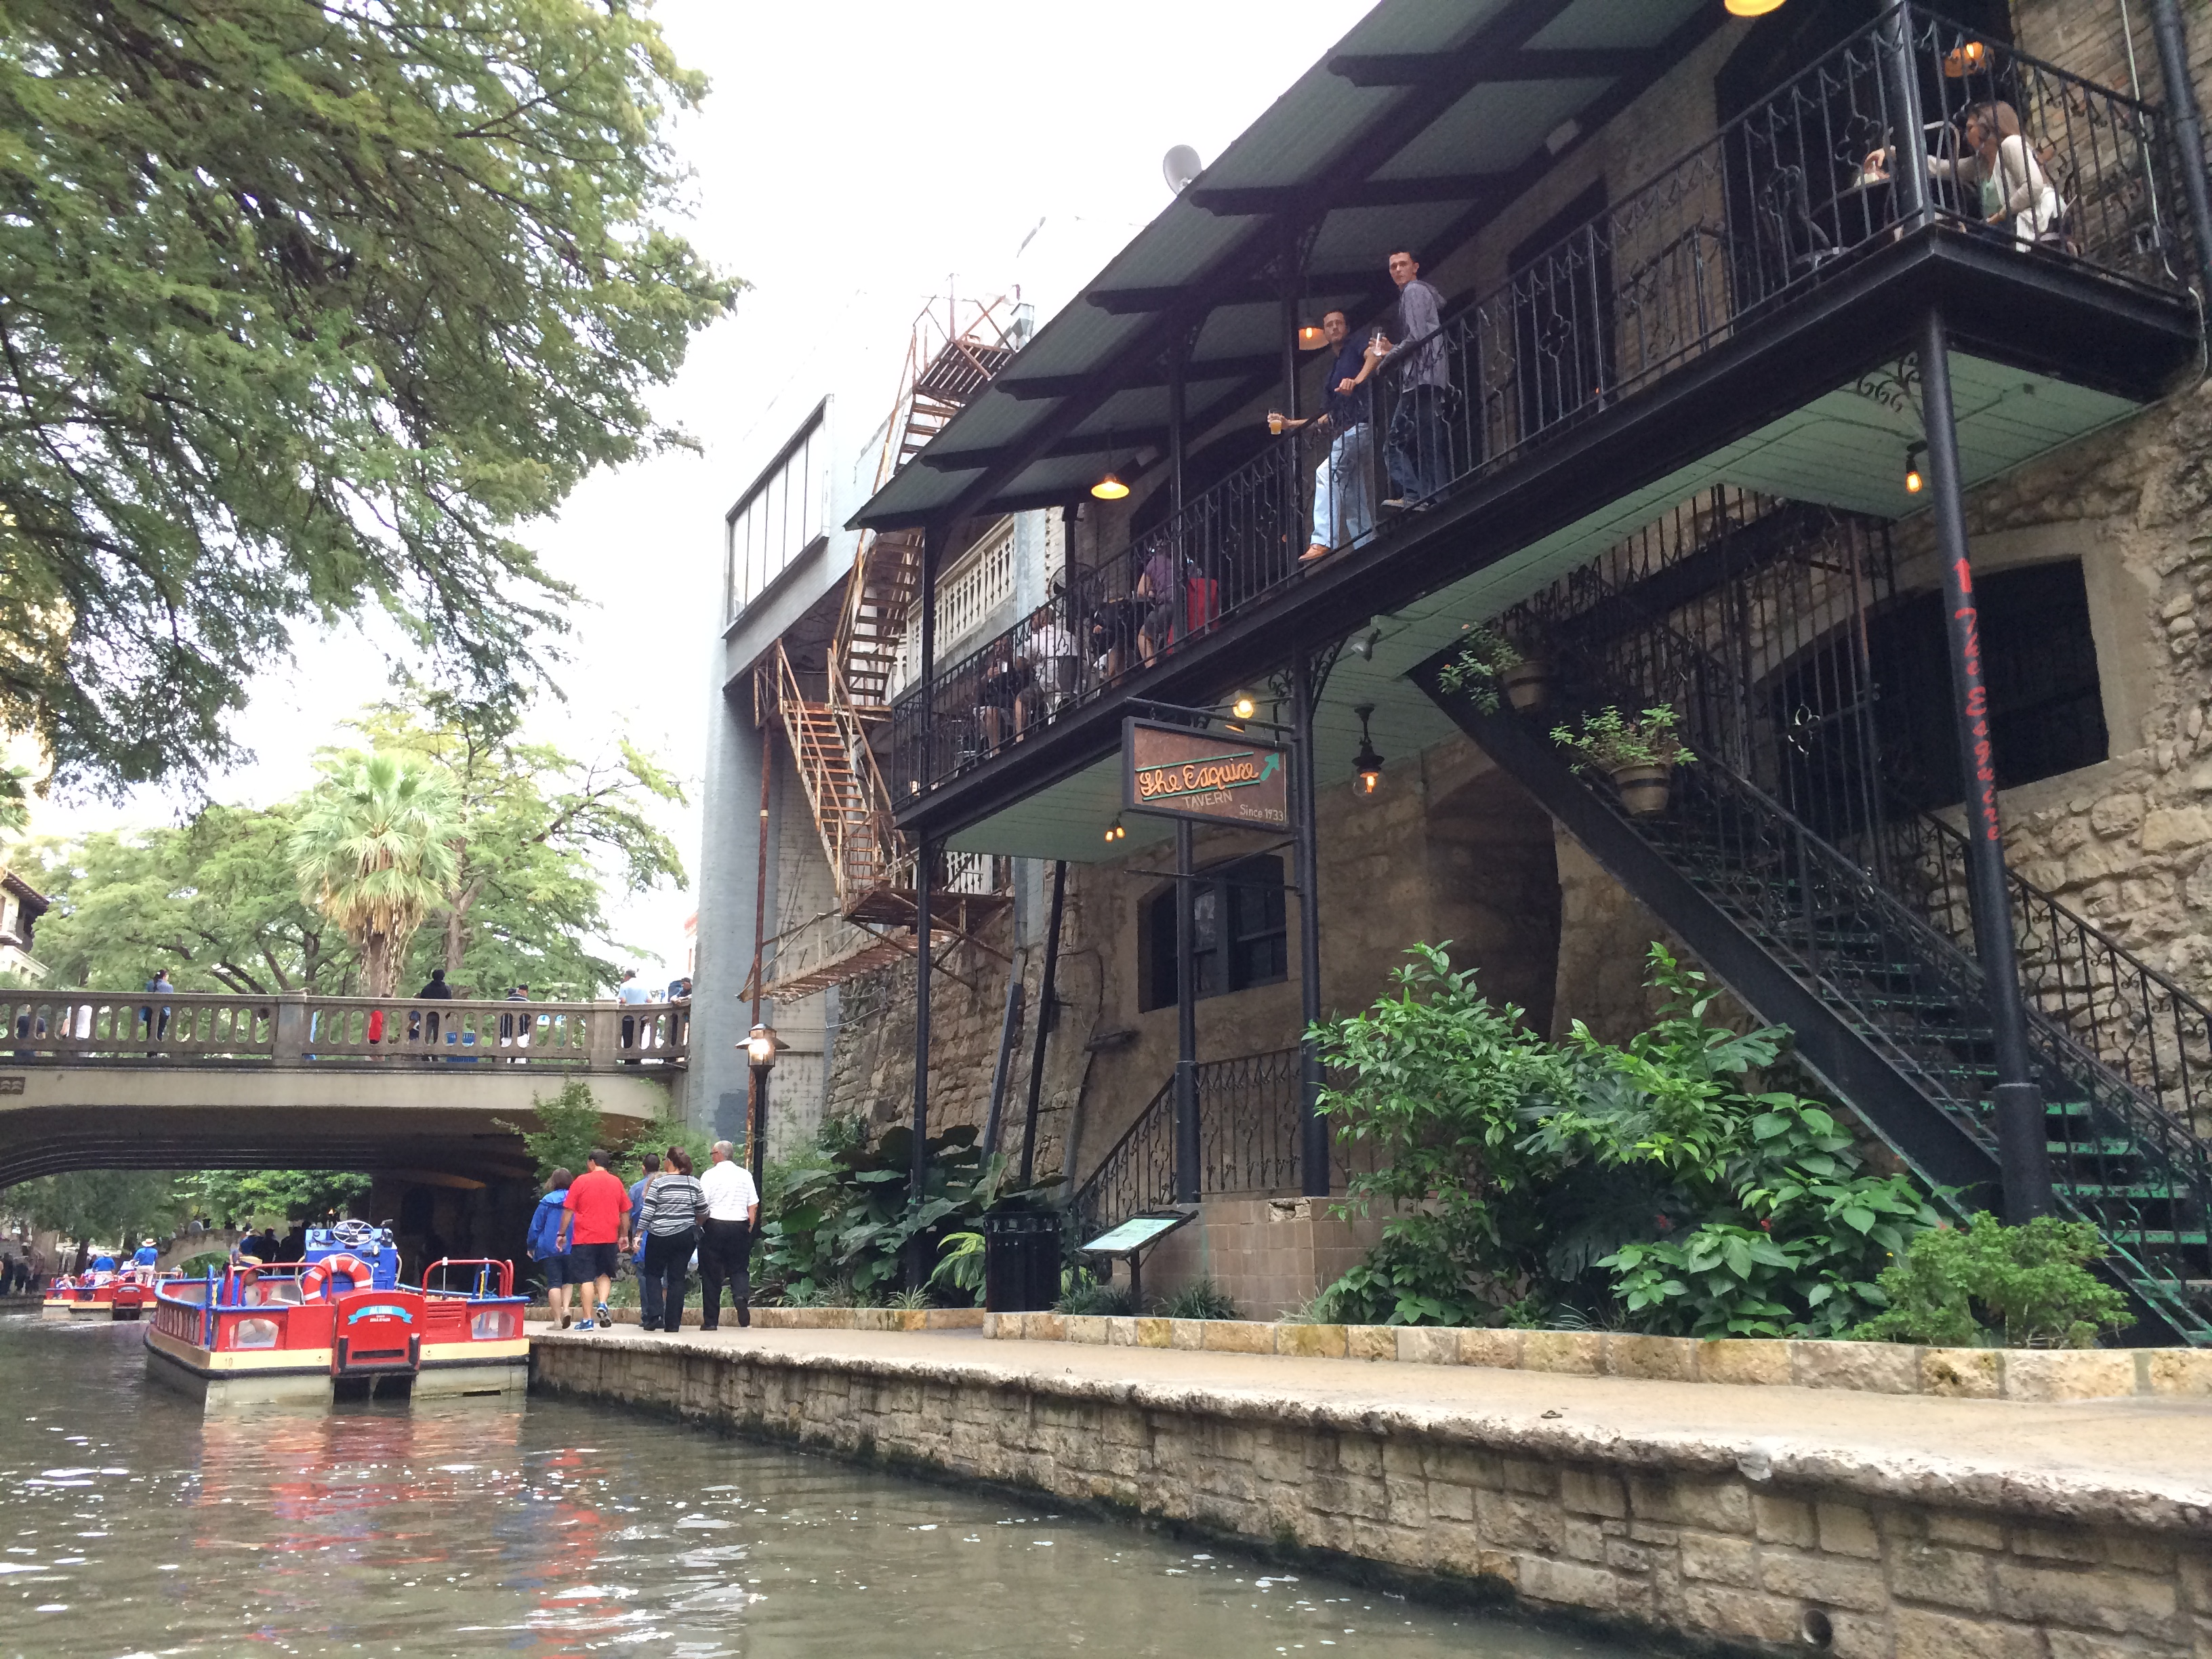 The Esquire Tavern, San Antonio